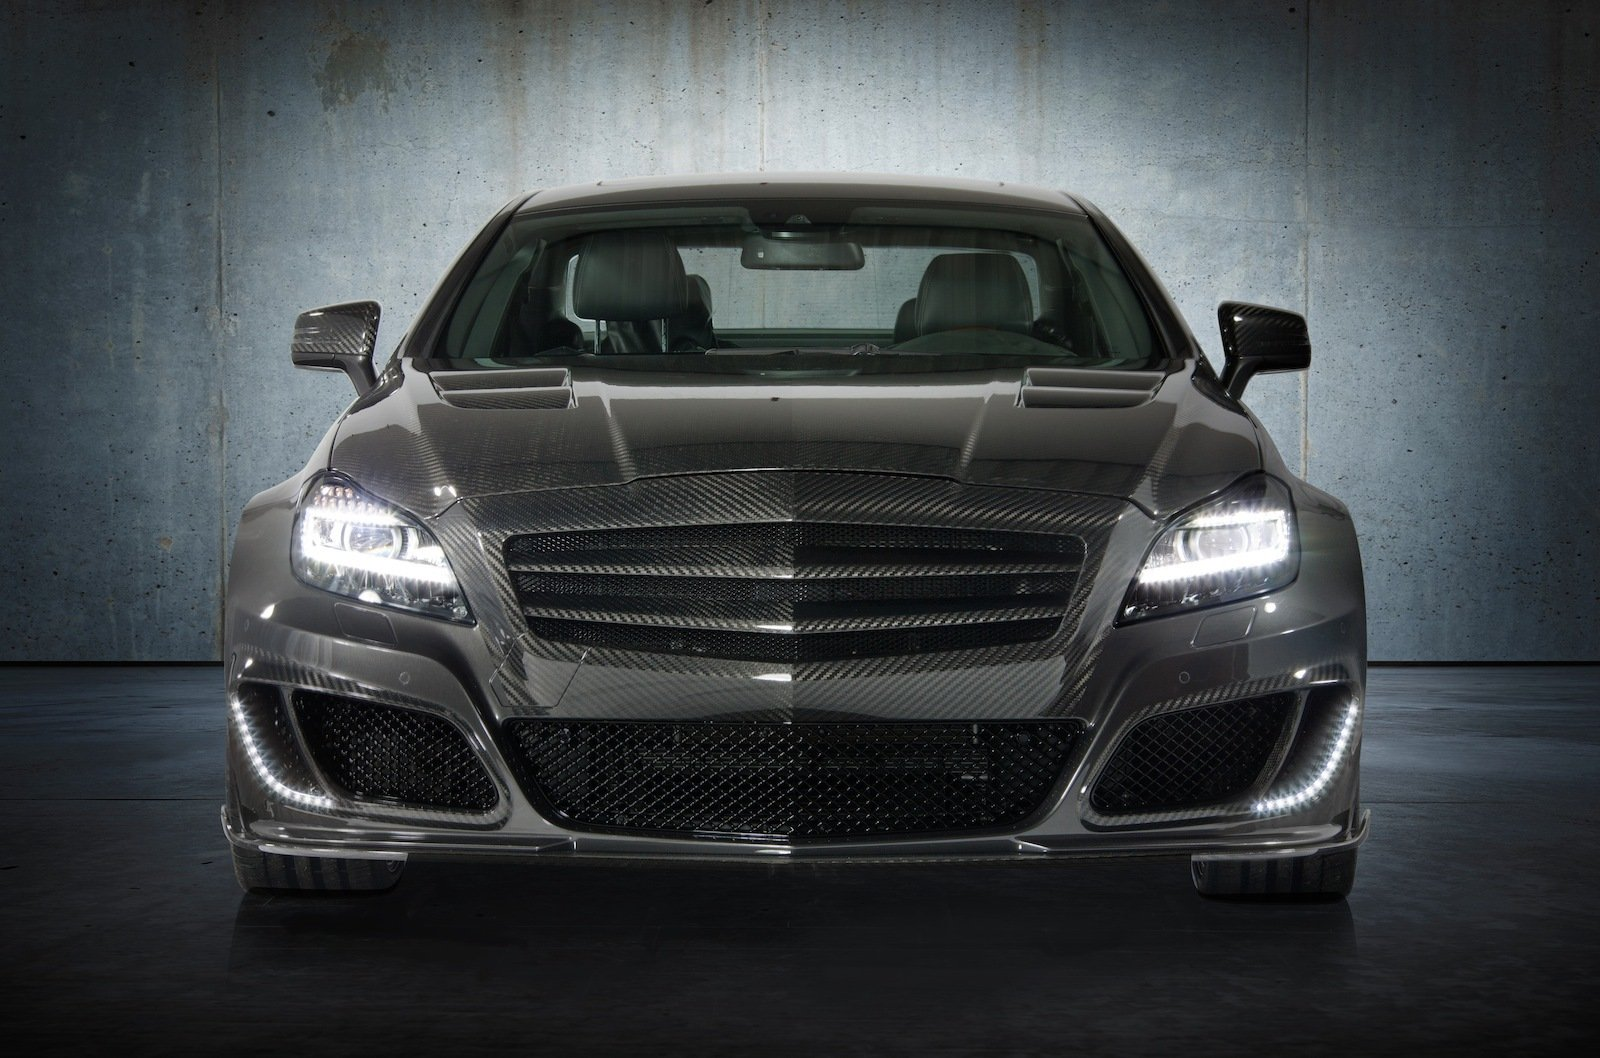 http://pictures.topspeed.com/IMG/crop/201203/2012-mercedes-cls63-amg-b-3_1600x0w.jpg